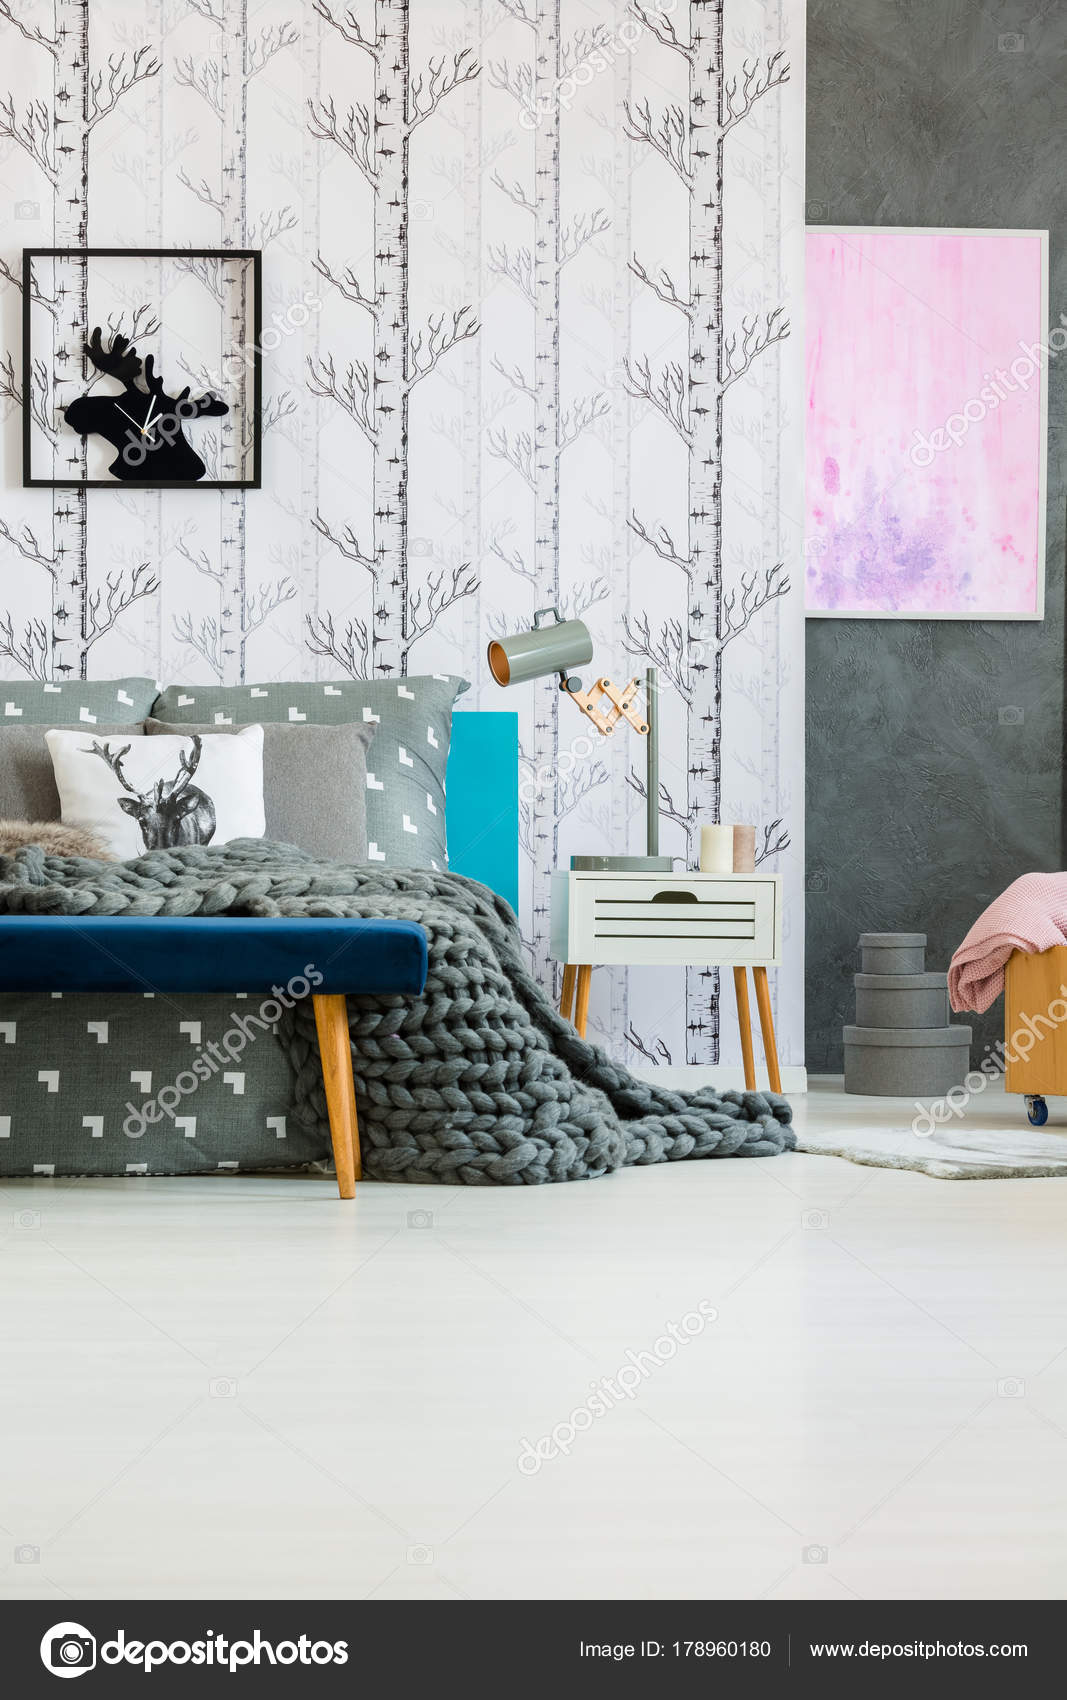 Moose klok in slaapkamer interieur — Stockfoto © photographee.eu ...